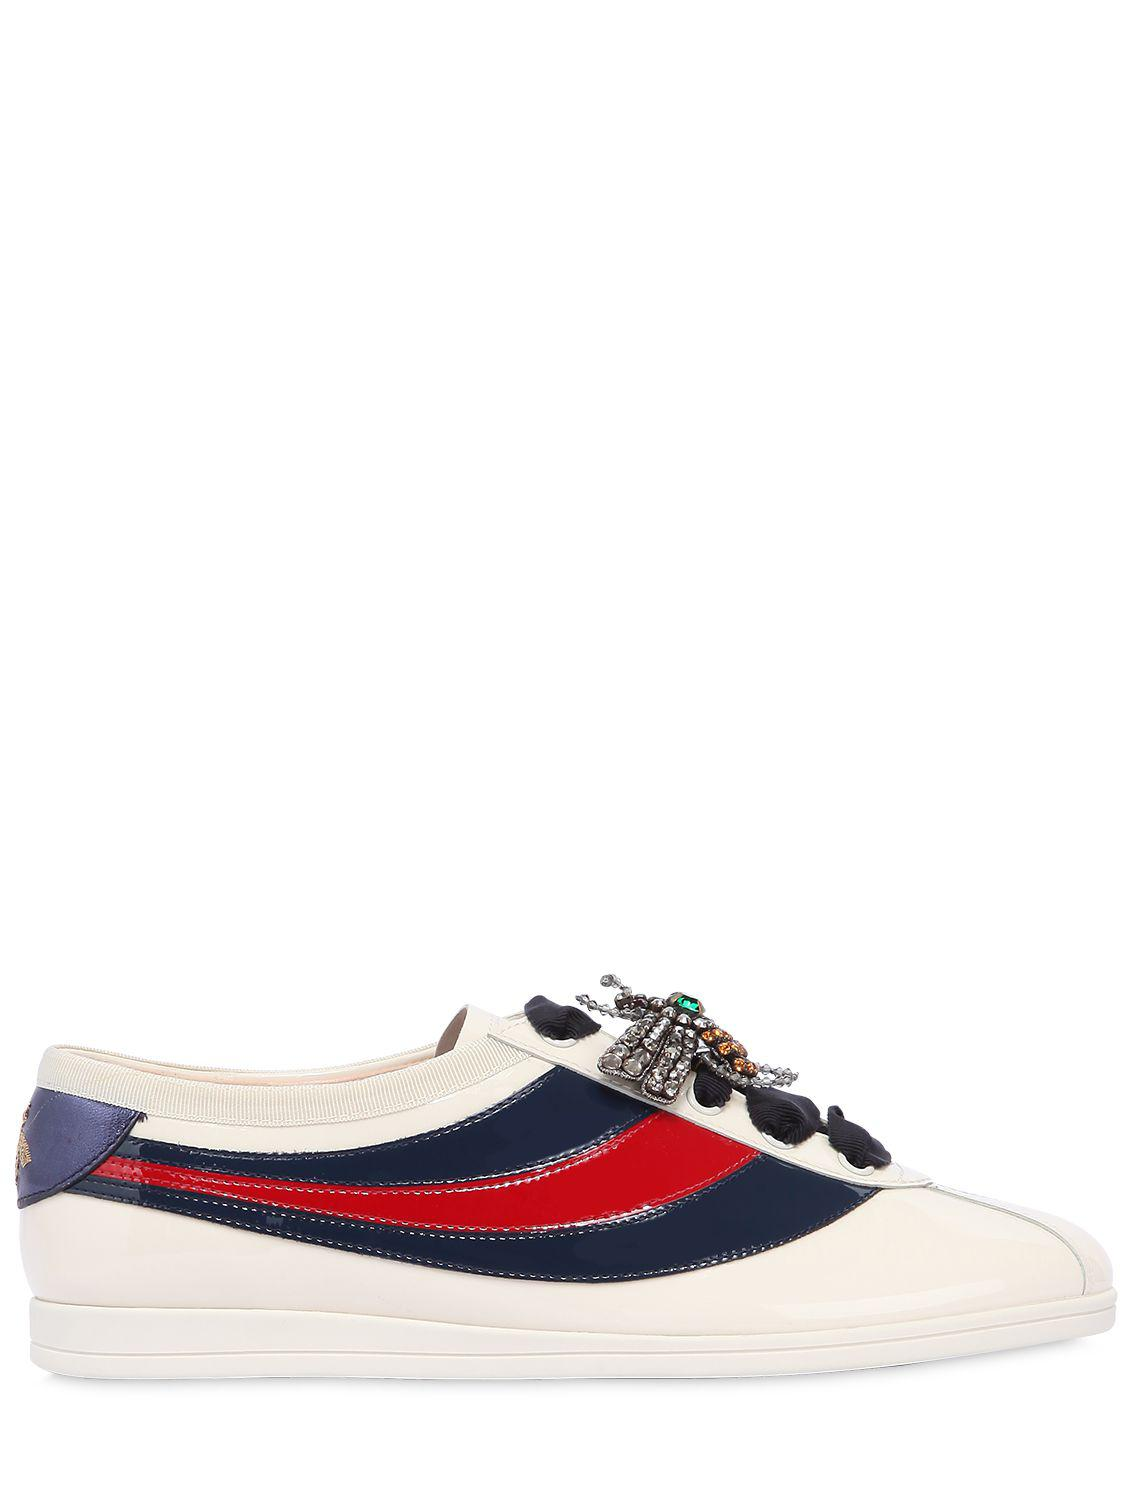 Falacer patent leather sneakers with Web - White Gucci JXMaSNax